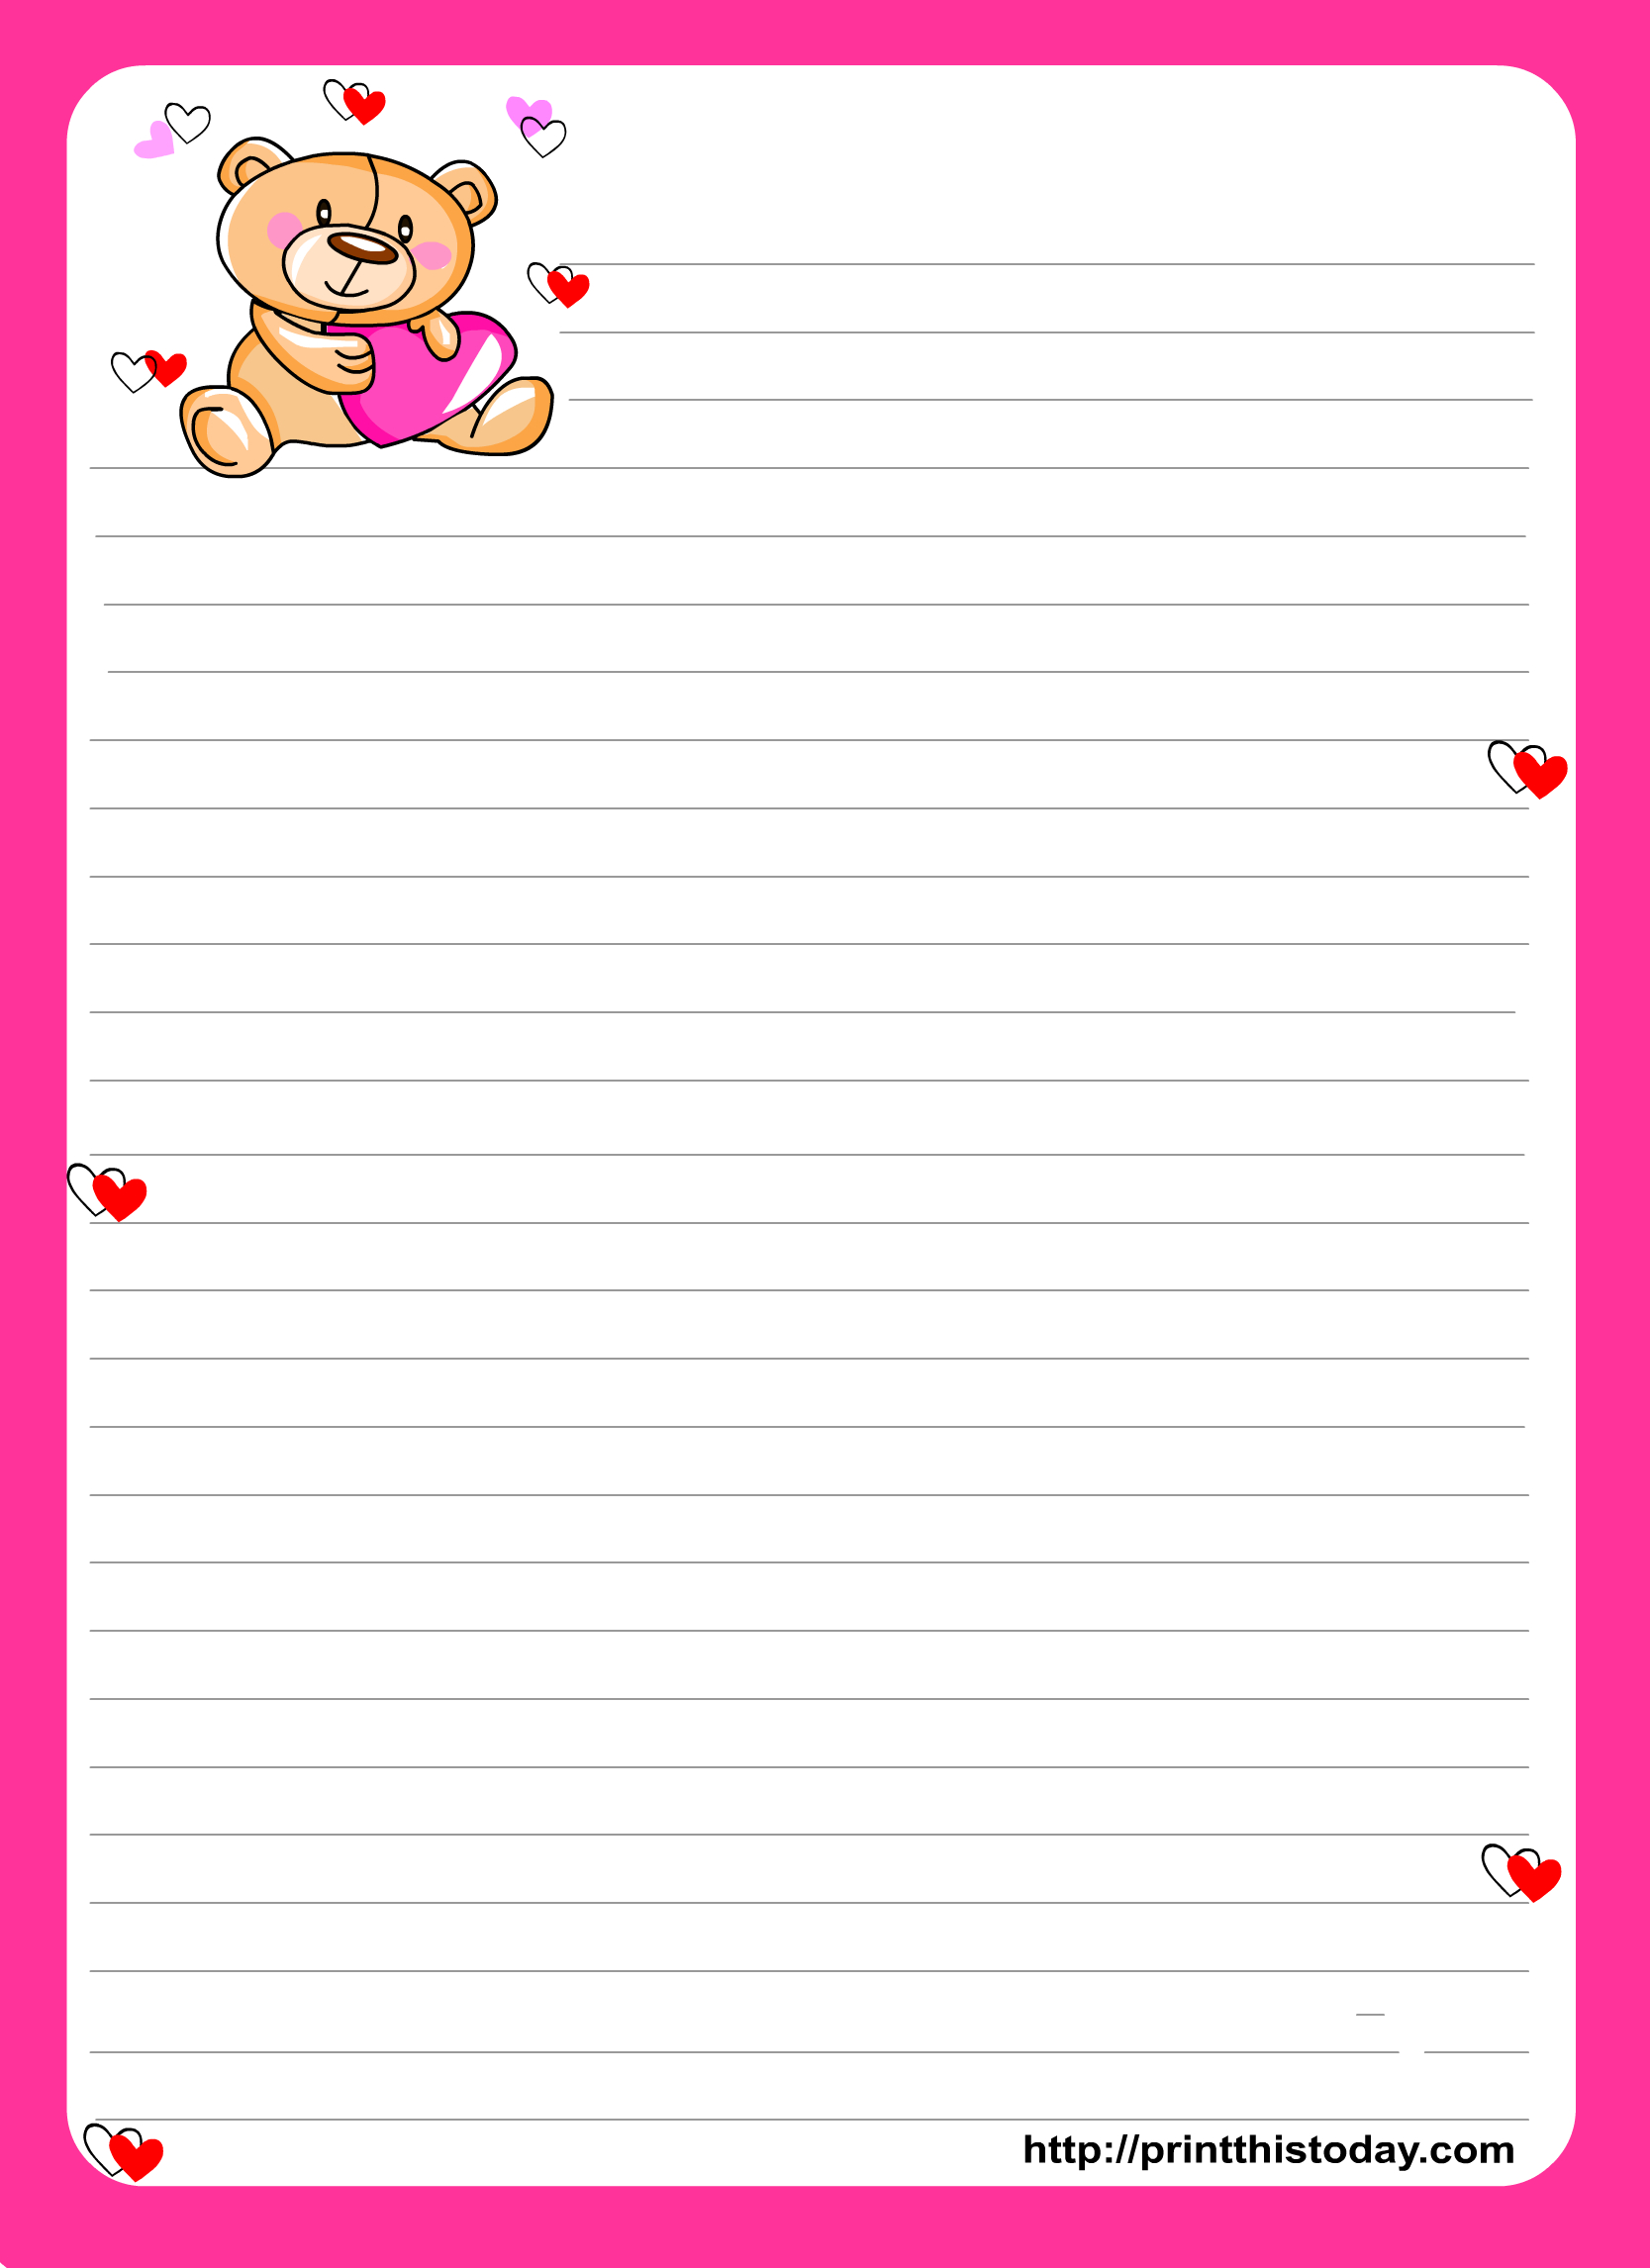 Printable Stationery Paper - Google Search   Stationery - Printables - Free Printable Stationery Paper